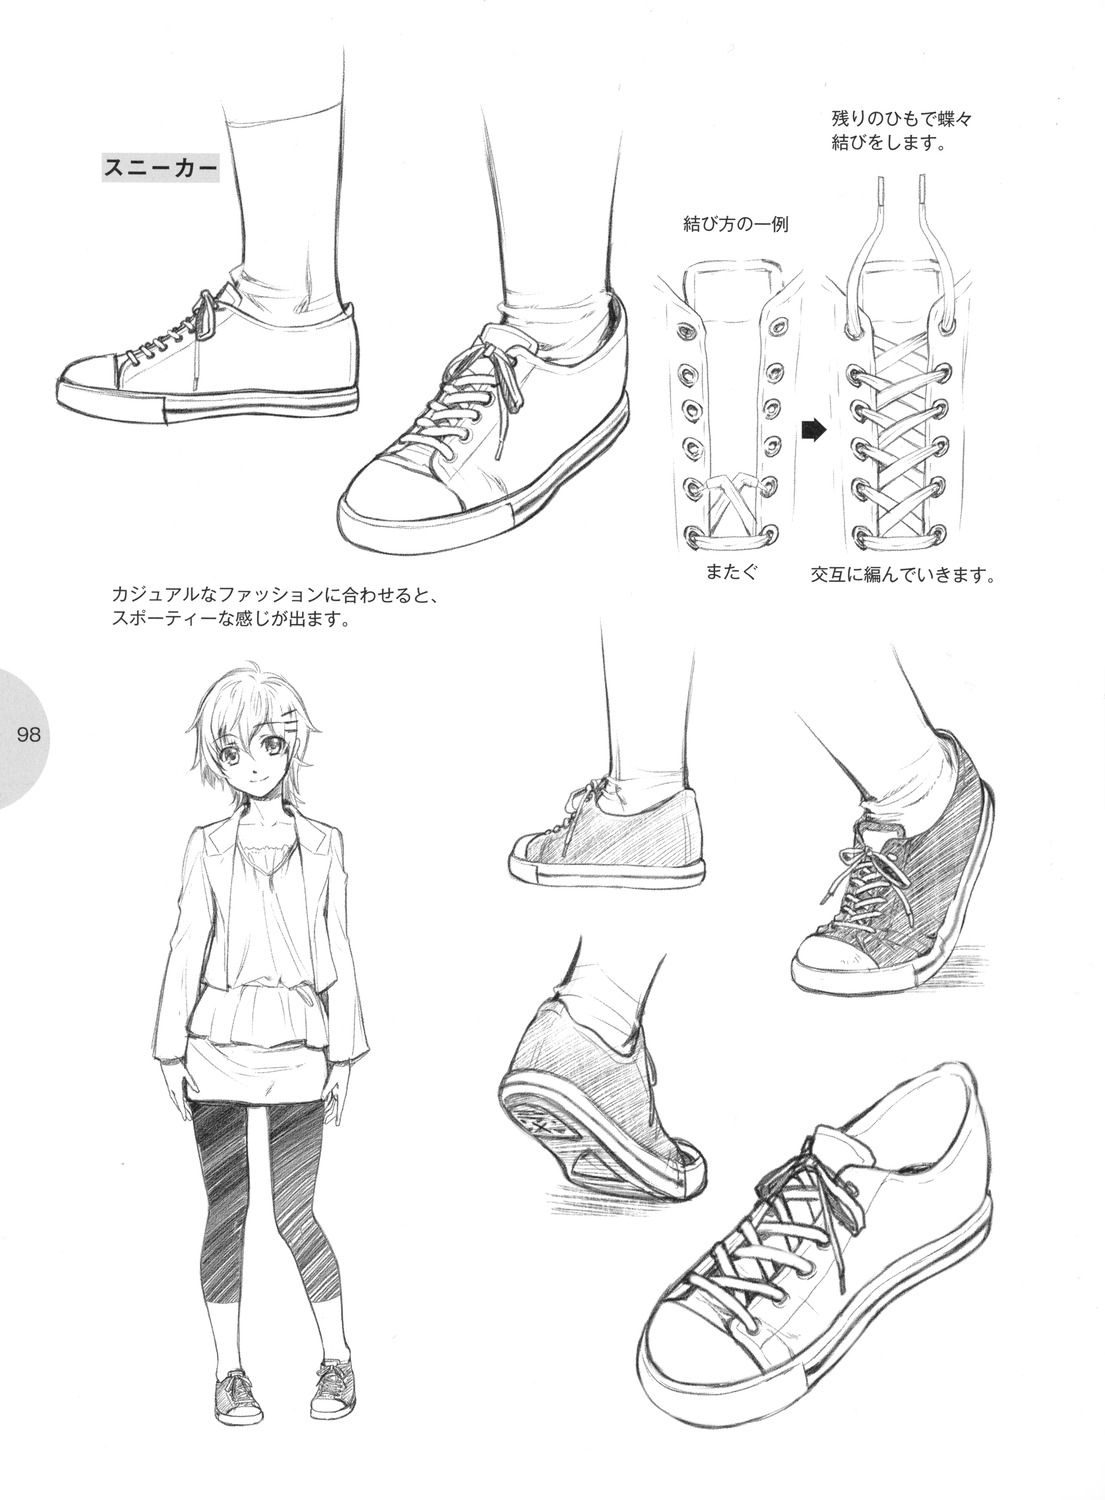 Knickerweasels Drawing Feet And Shoes From 萌えキャラクターの描き